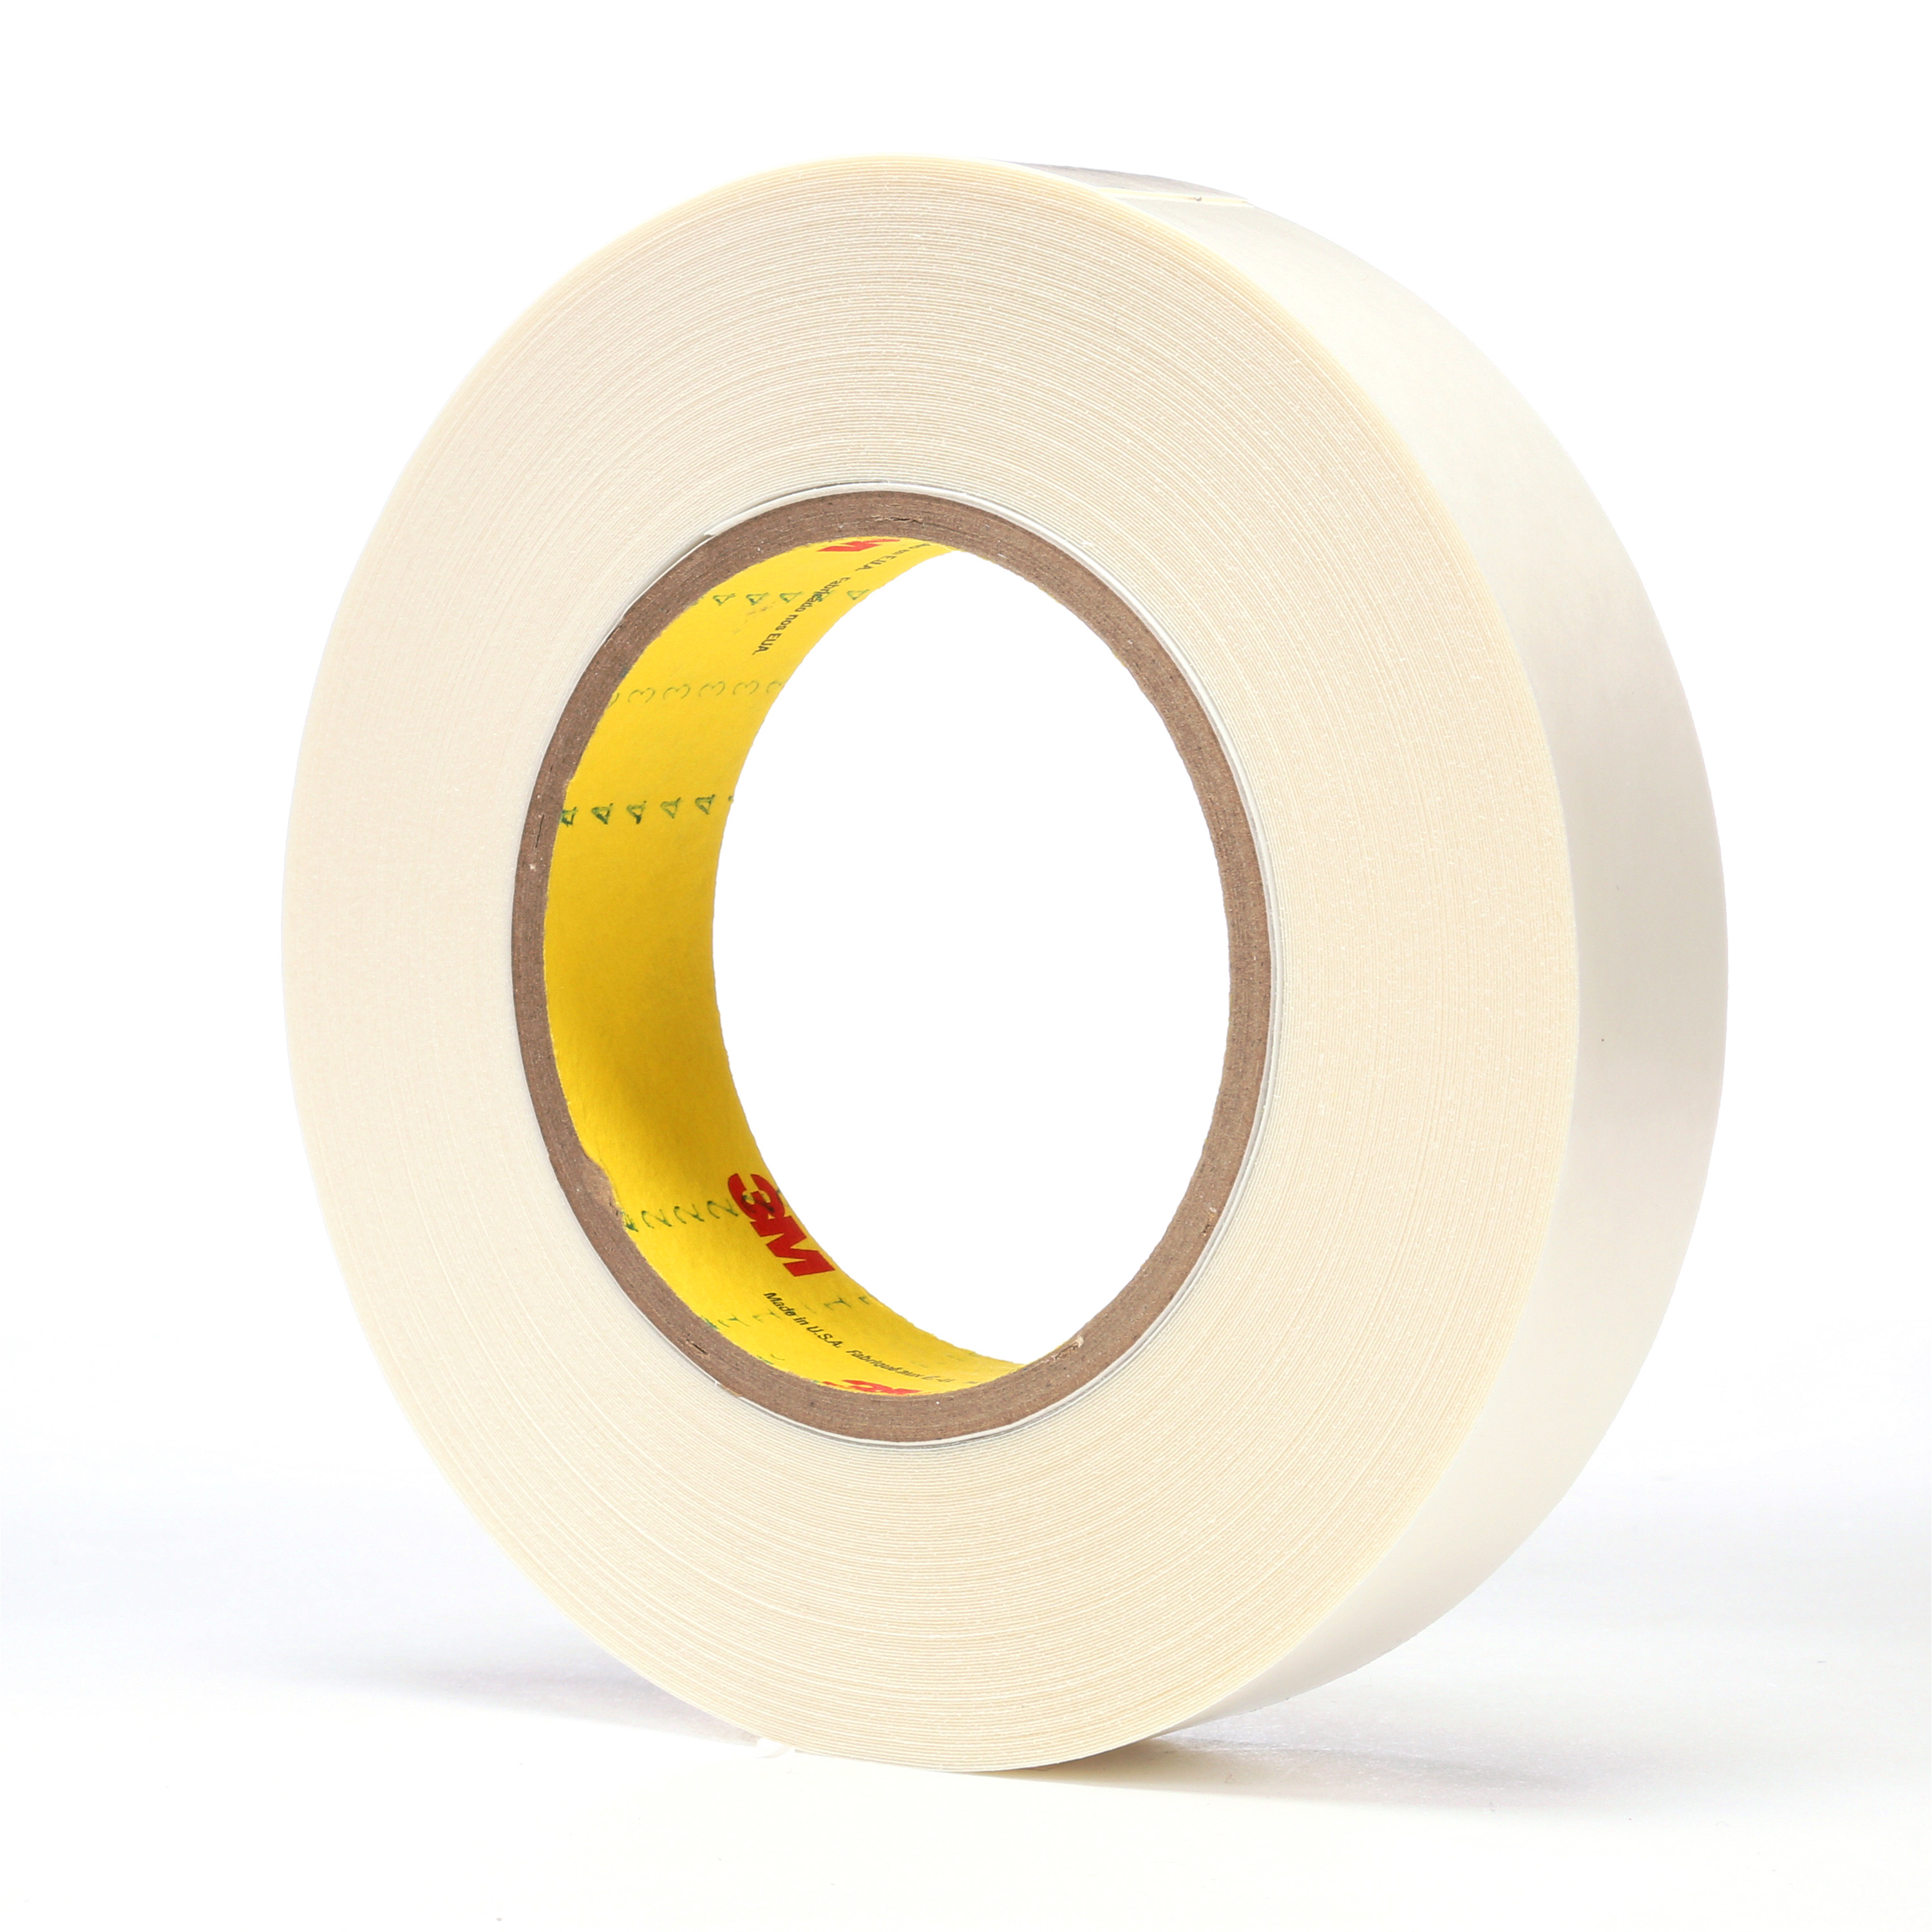 3M™ Double Coated Tape 9579, White, 1 in x 36 yd, 9 mil, 36 rolls per case